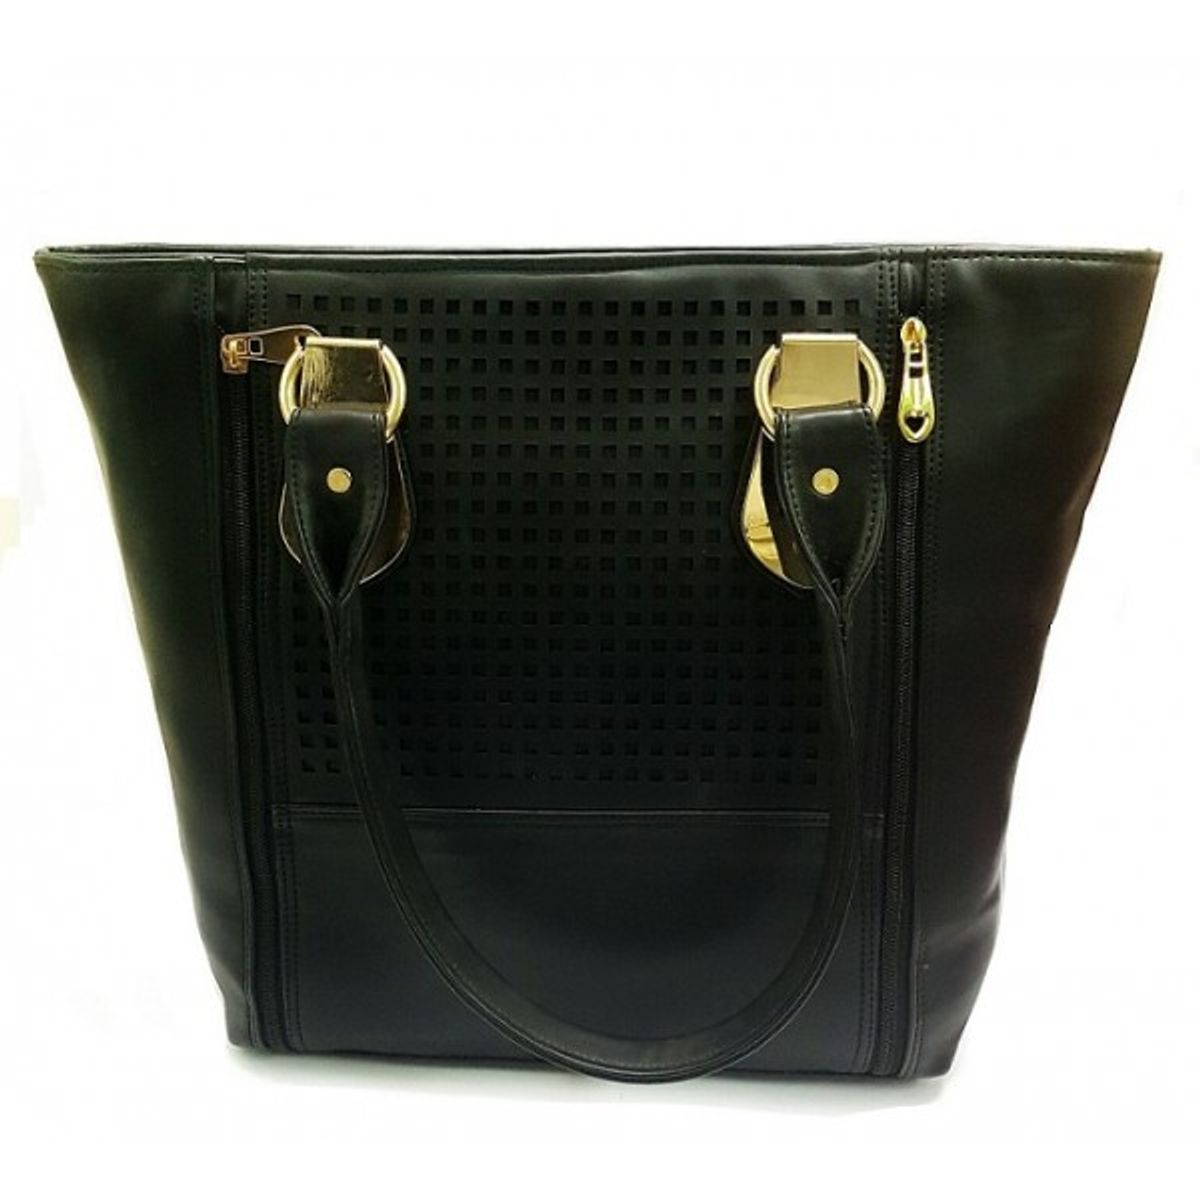 Turqueesa Metallic Black Fantasy Hand Bag